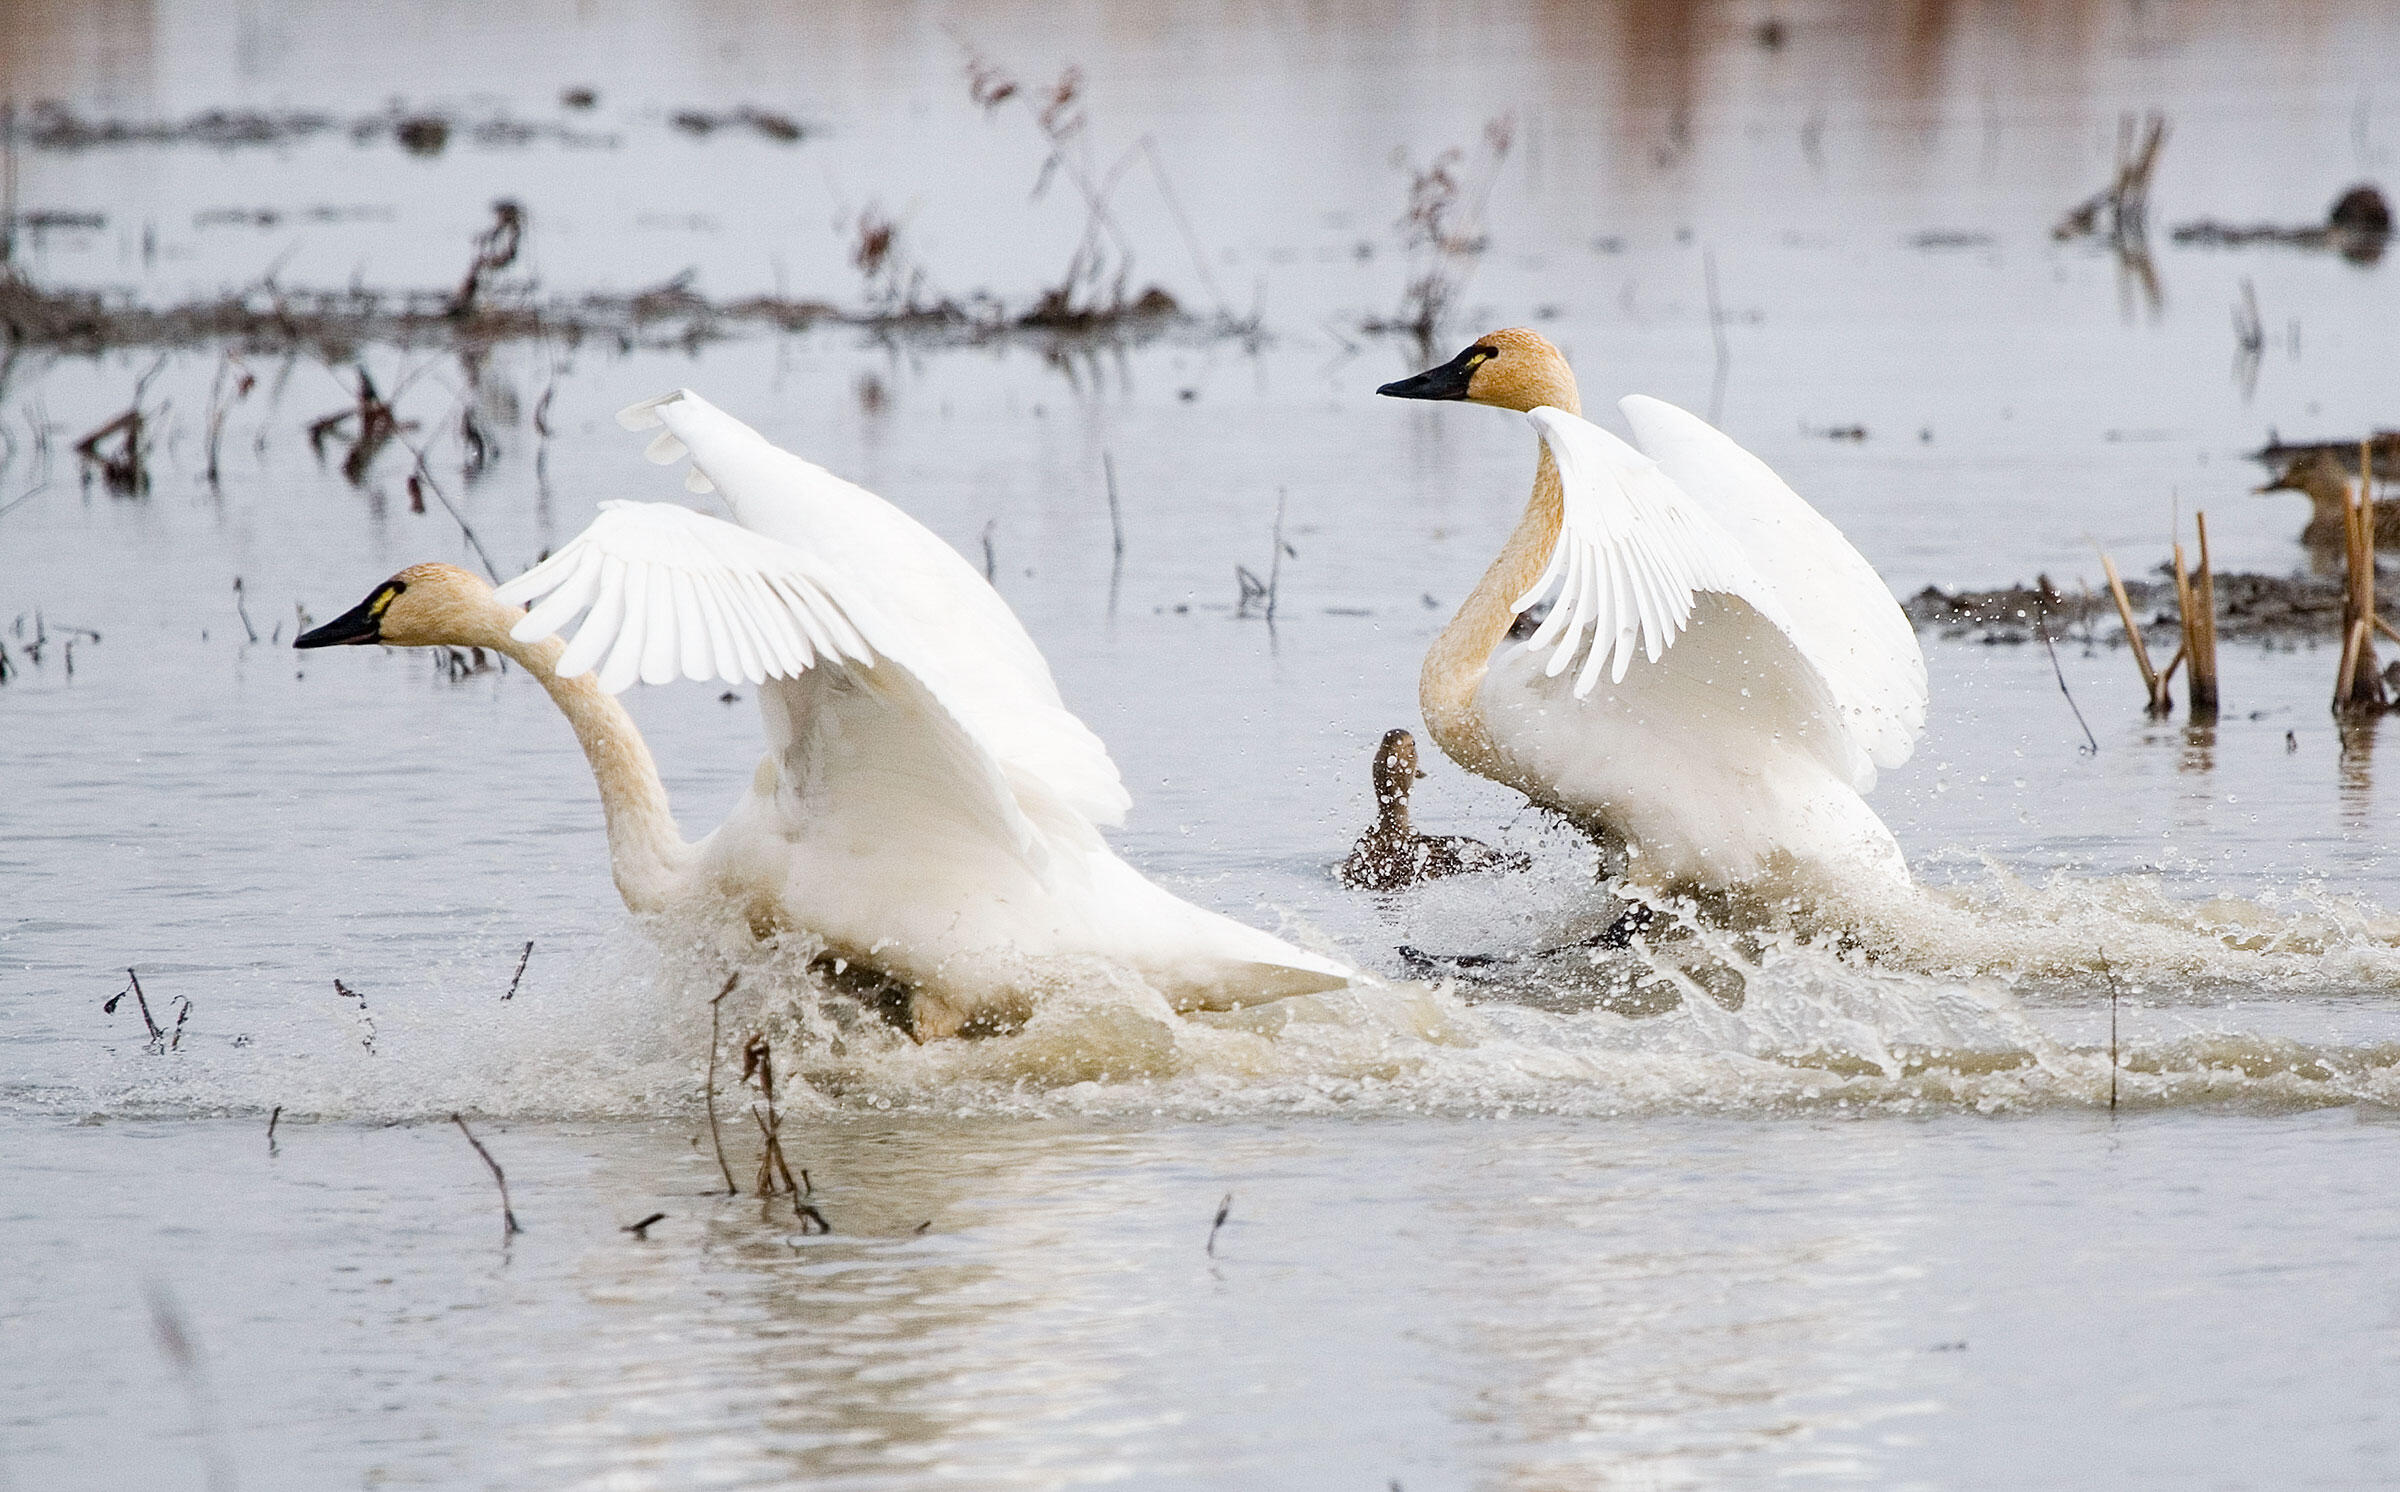 Waterfowl like these Tundra Swans have a typical window of time for their migrations, but they also need open water. An unusually cold spring may delay their northward migration until their habitat thaws. Kenn Kaufman